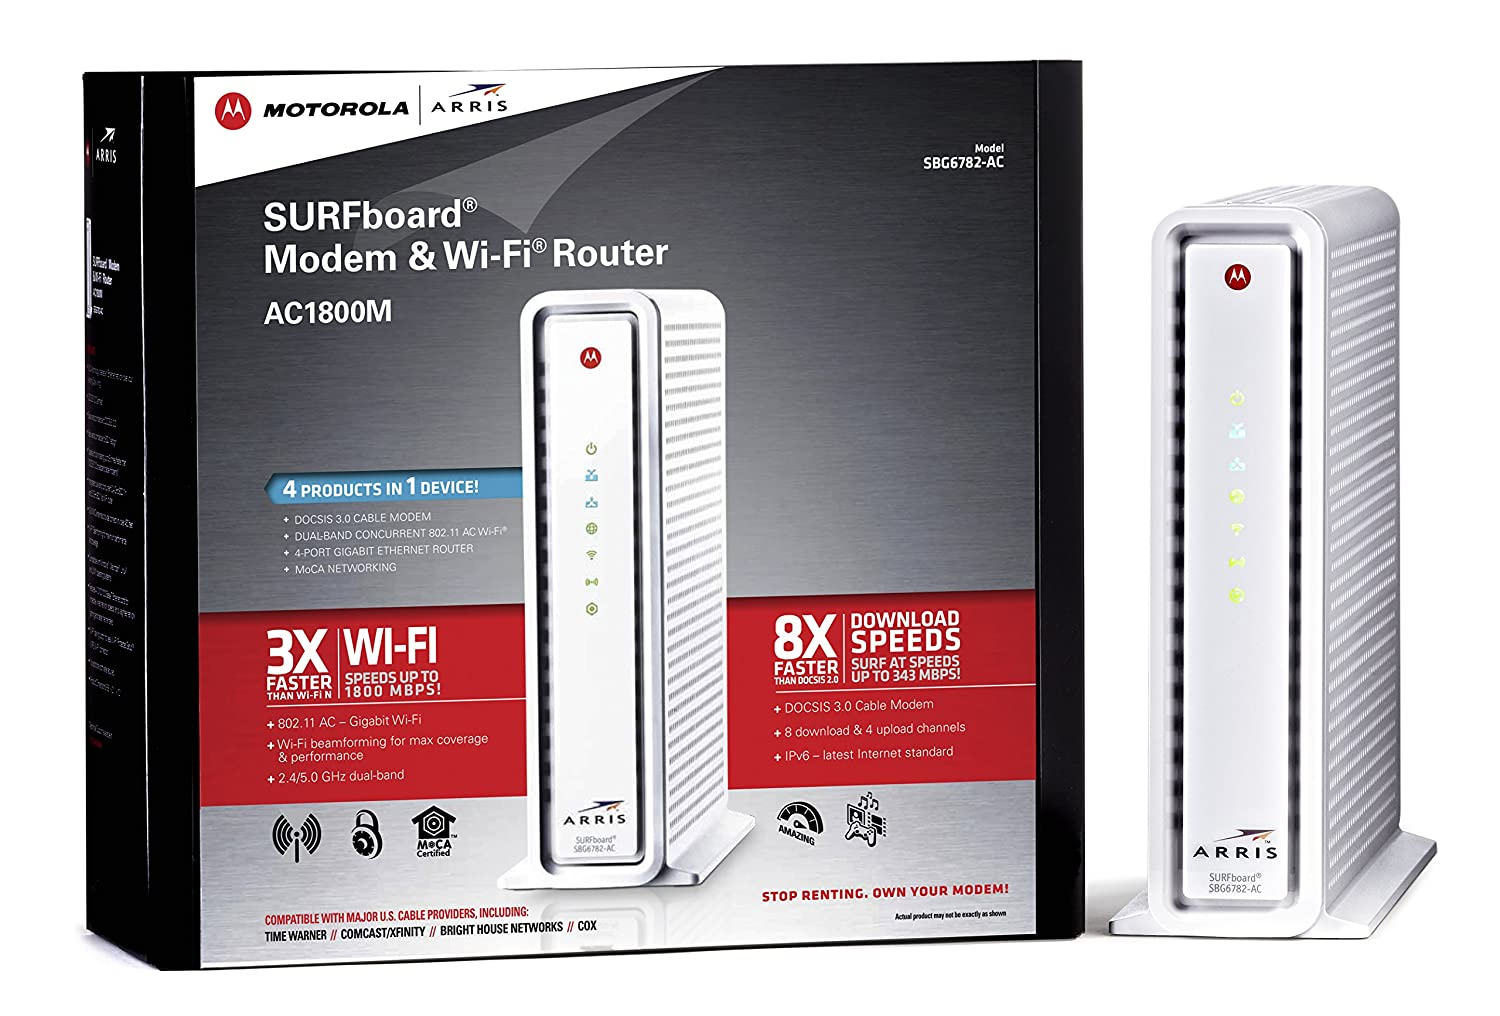 ARRIS SURFboard AC1750 DOCSIS 3 0 Cable Modem Router (SBG6782) Certified  with Comcast Xfinity, Time Warner Cable, Charter, Cox, Cablevision, and  more